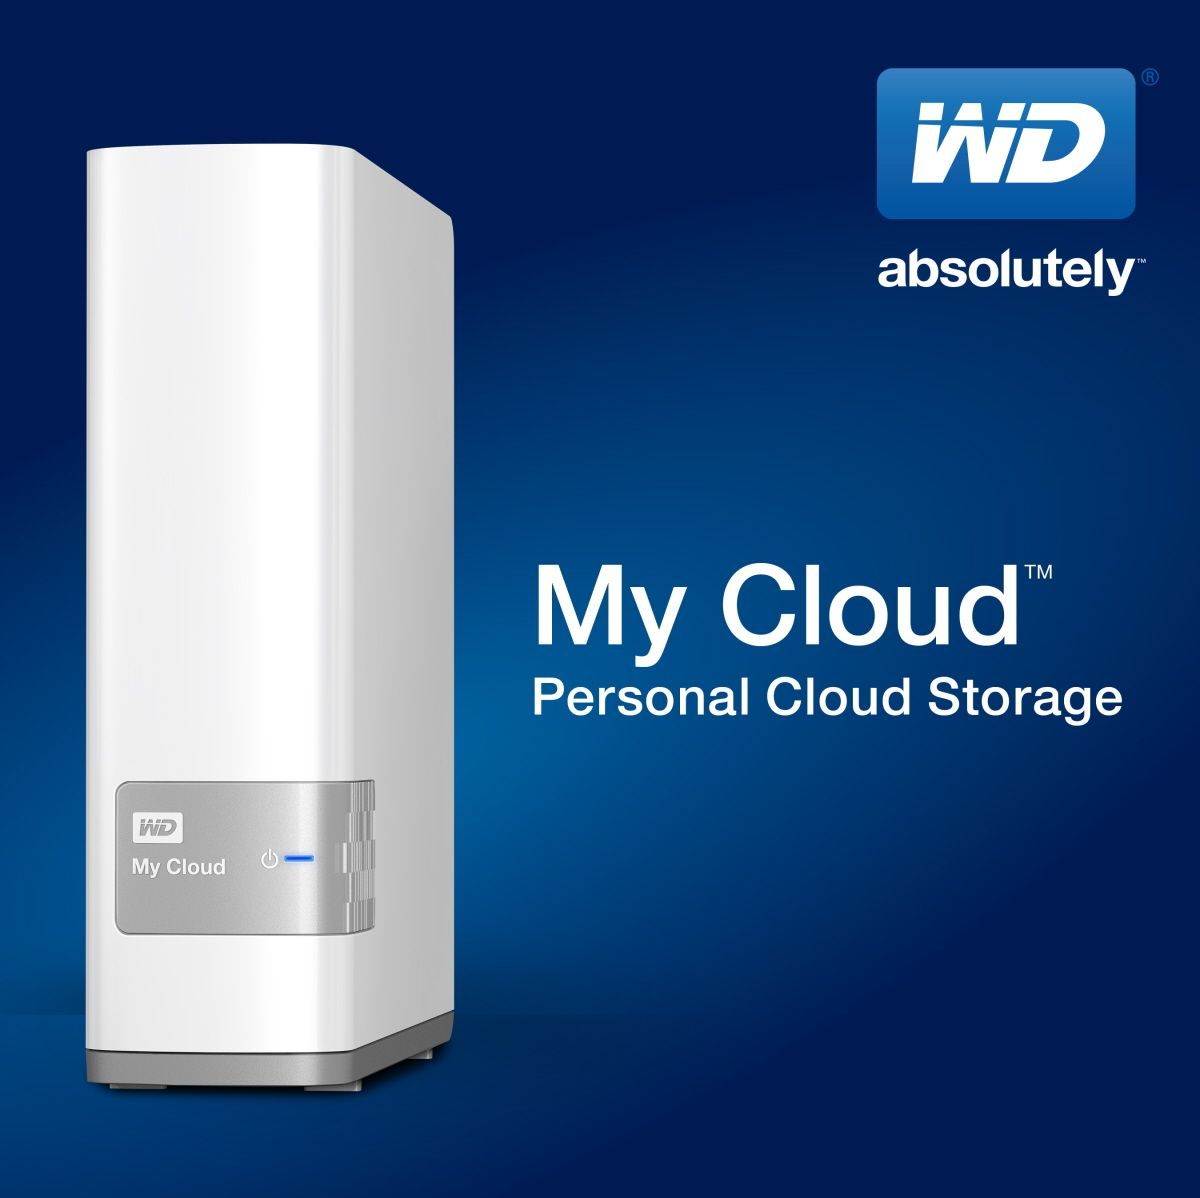 Wd My Cloud Solid Red Light On Data Medics Recovery Clouds Light Red Cloud Storage